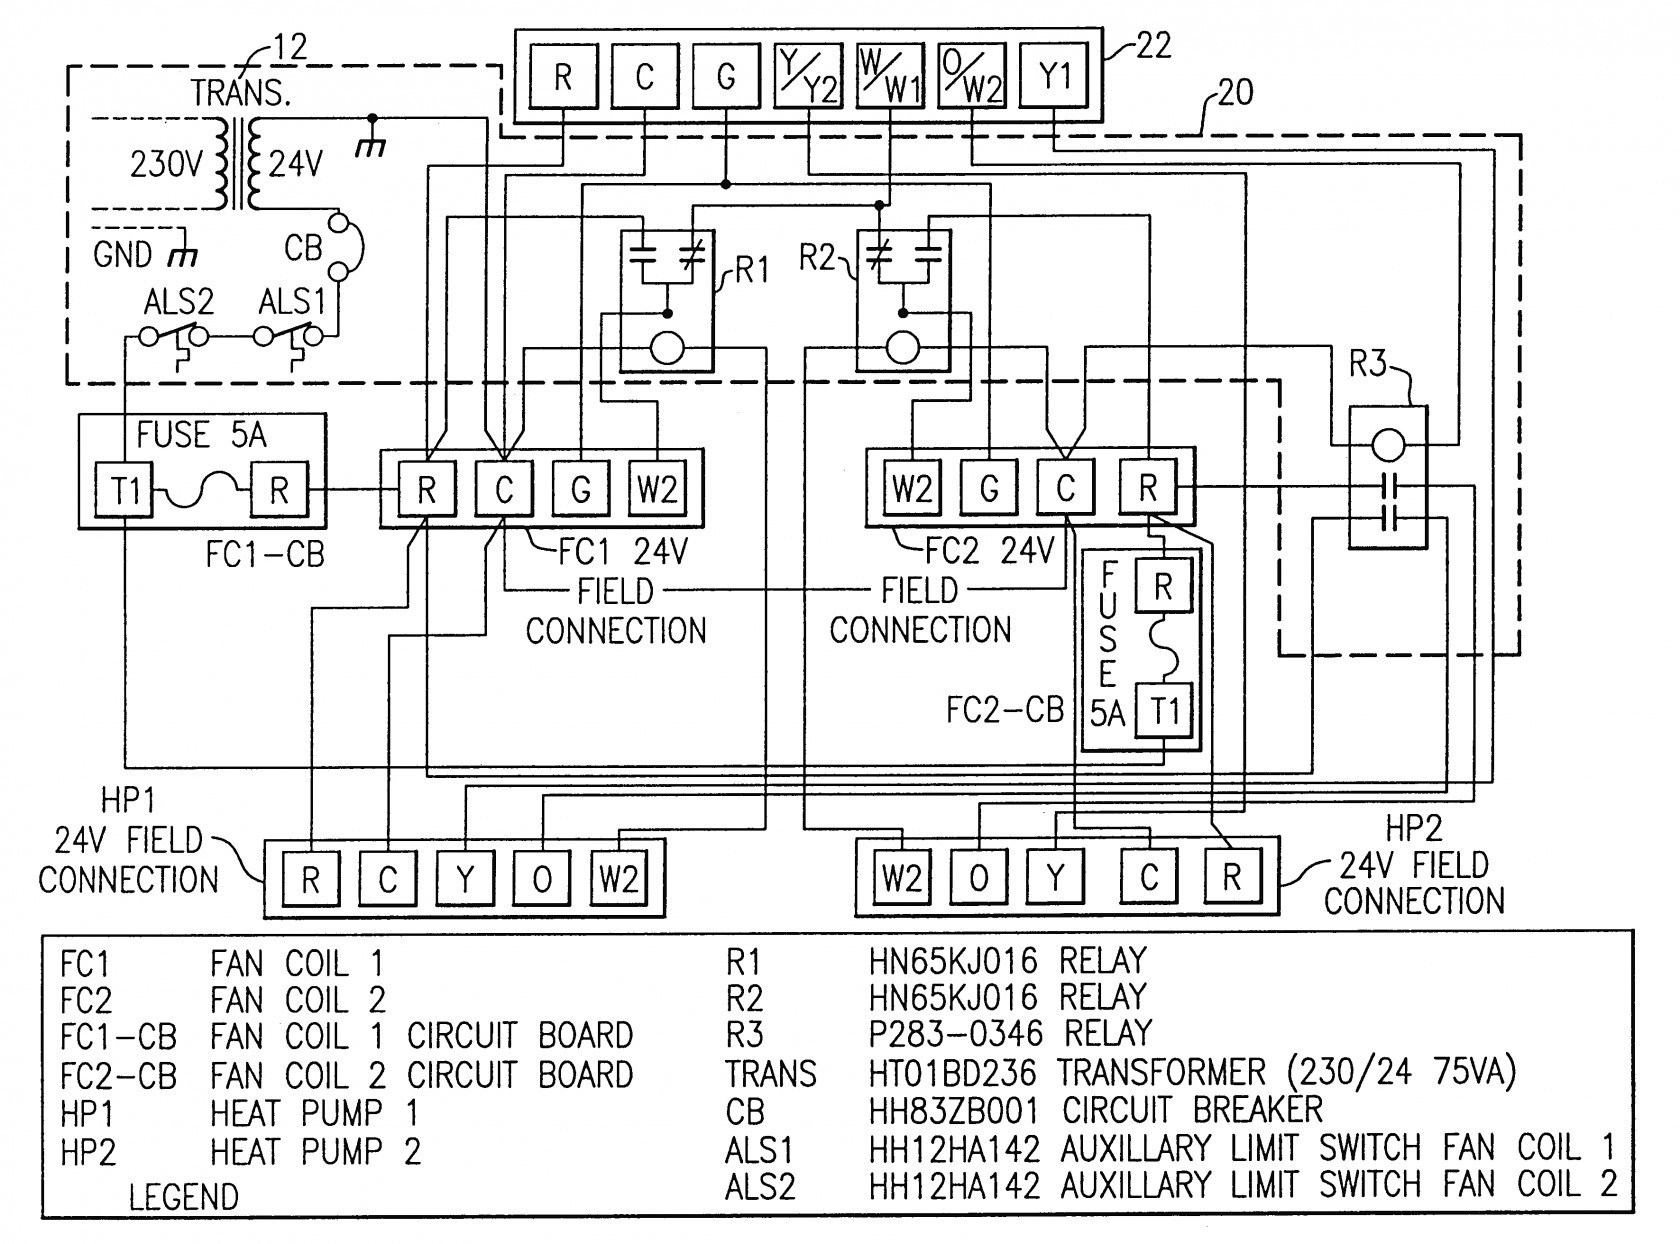 Generac 100 Amp Automatic Transfer Switch Wiring Diagram - Creative - Generac 200 Amp Transfer Switch Wiring Diagram